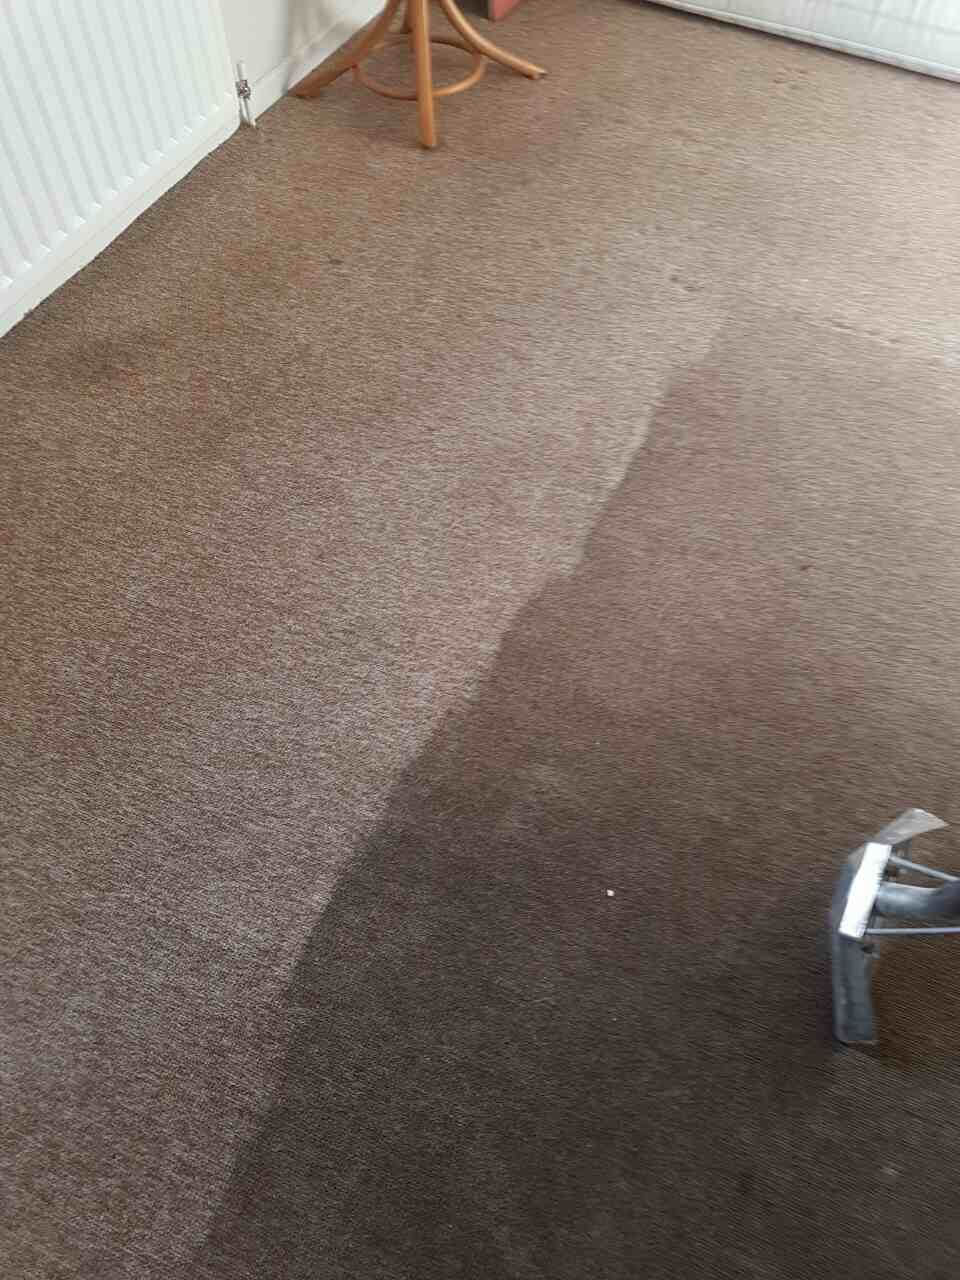 Elmers End clean carpet